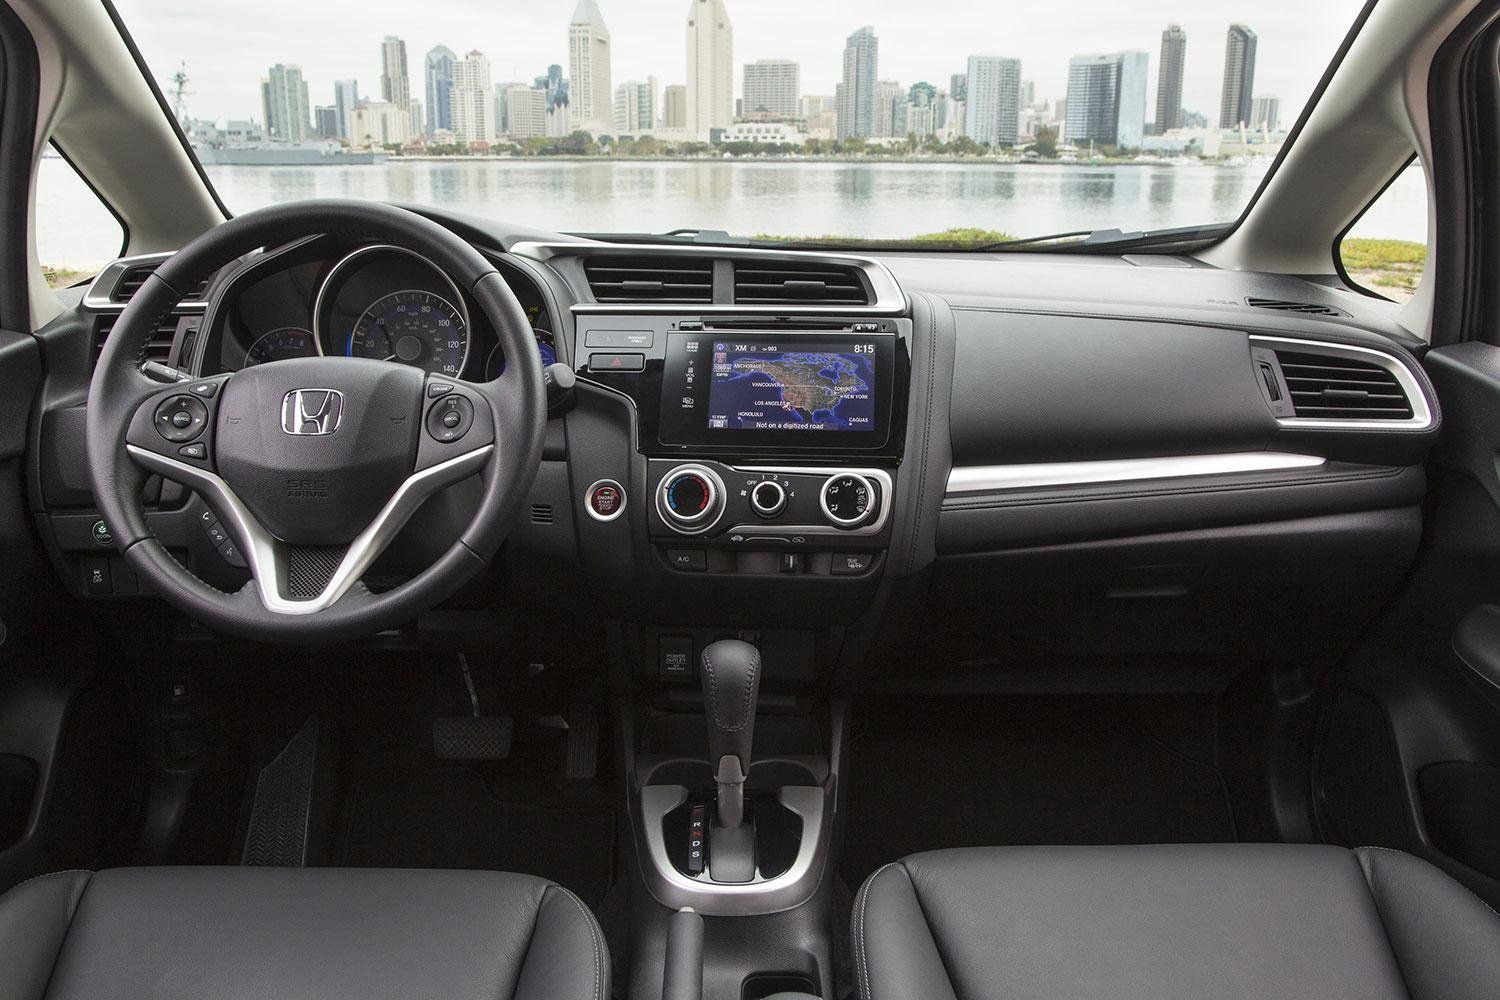 2015 Honda Fit Cockpit And Dashboard Interior (View 13 of 16)